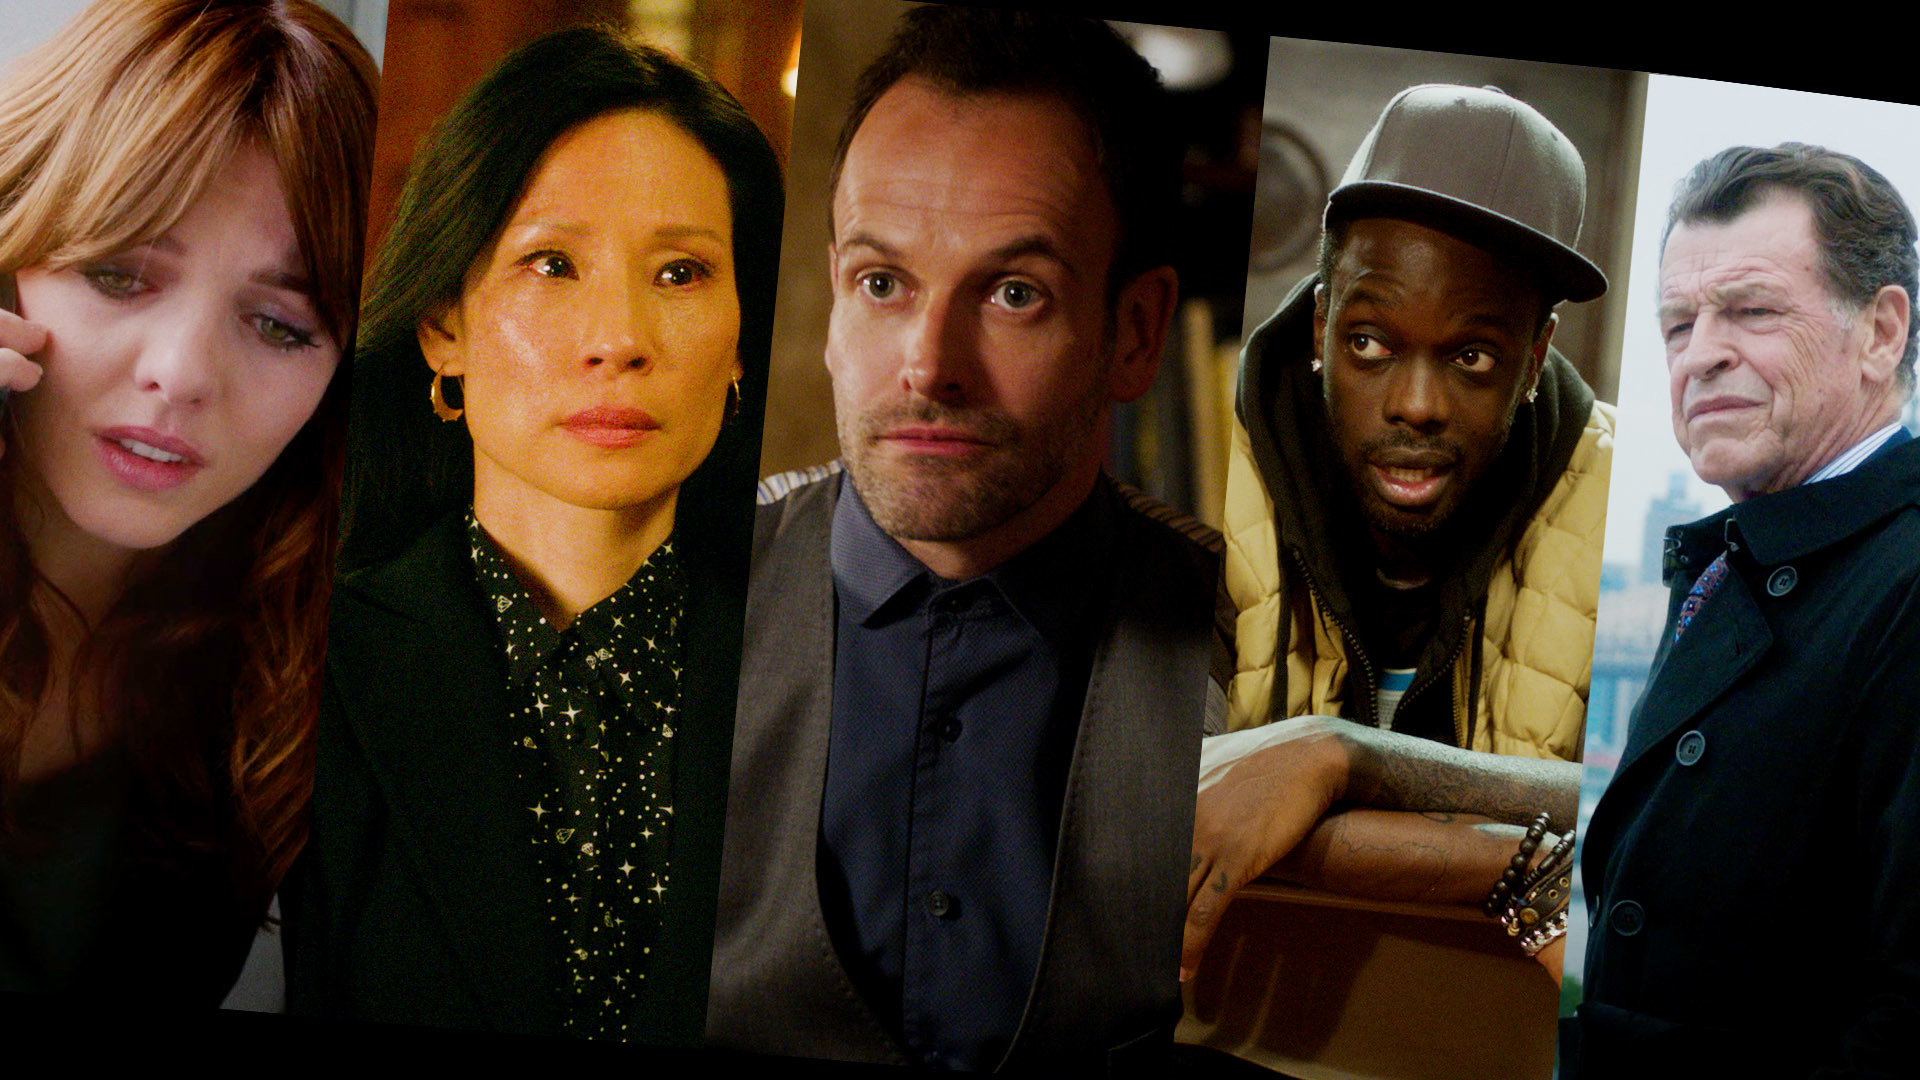 Watch Elementary: Sherlock's Growth: From Isolation To Love On Elementary - Full show on Paramount Plus